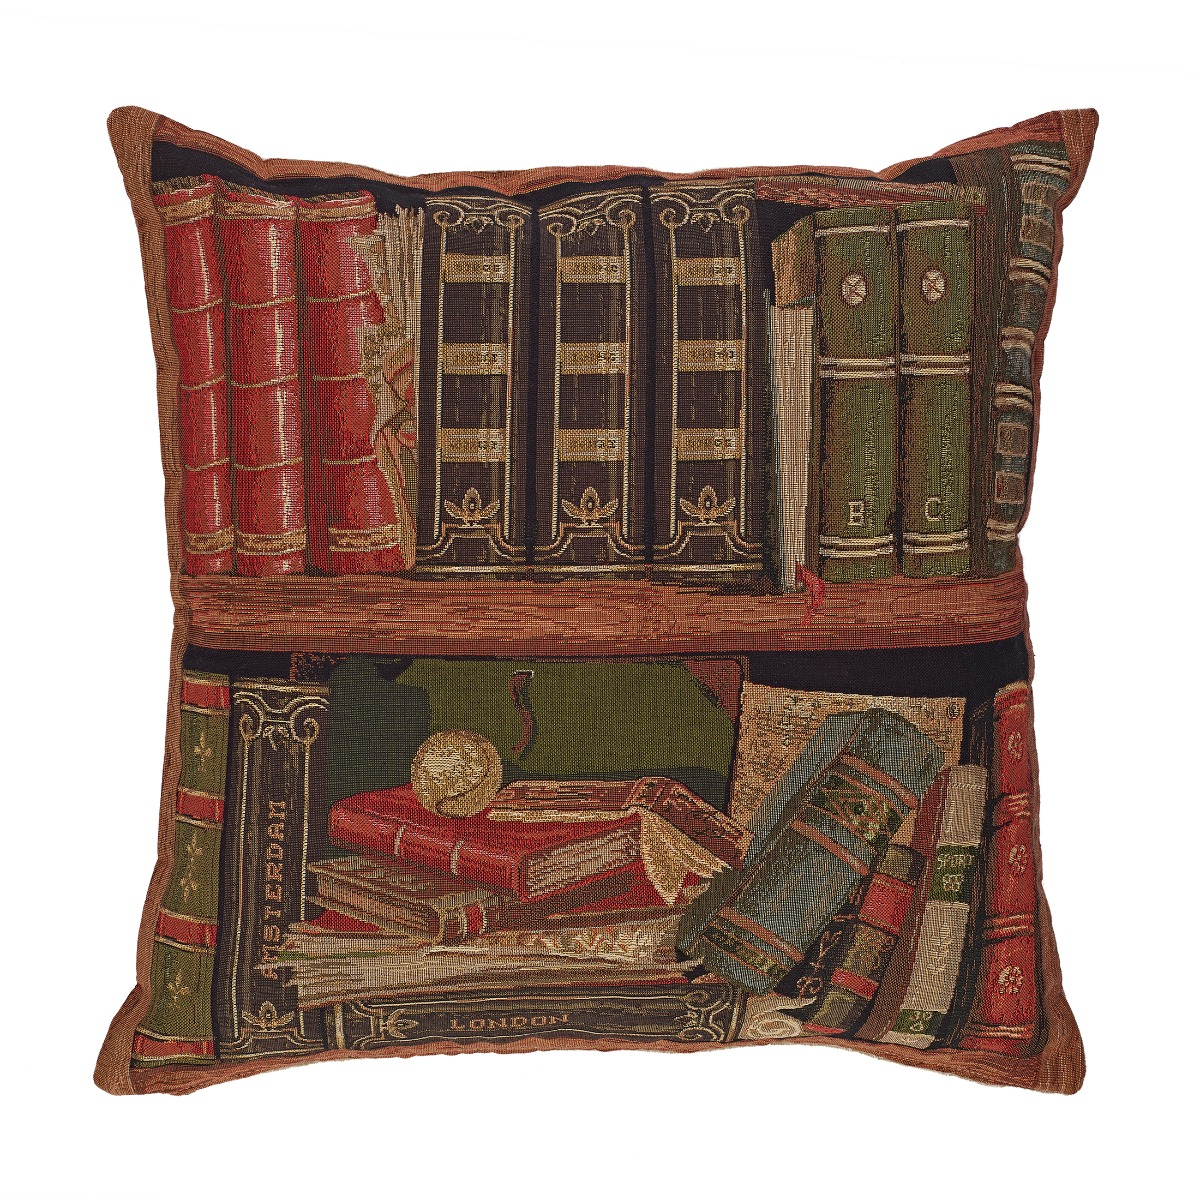 Tapestry library I cushion cover